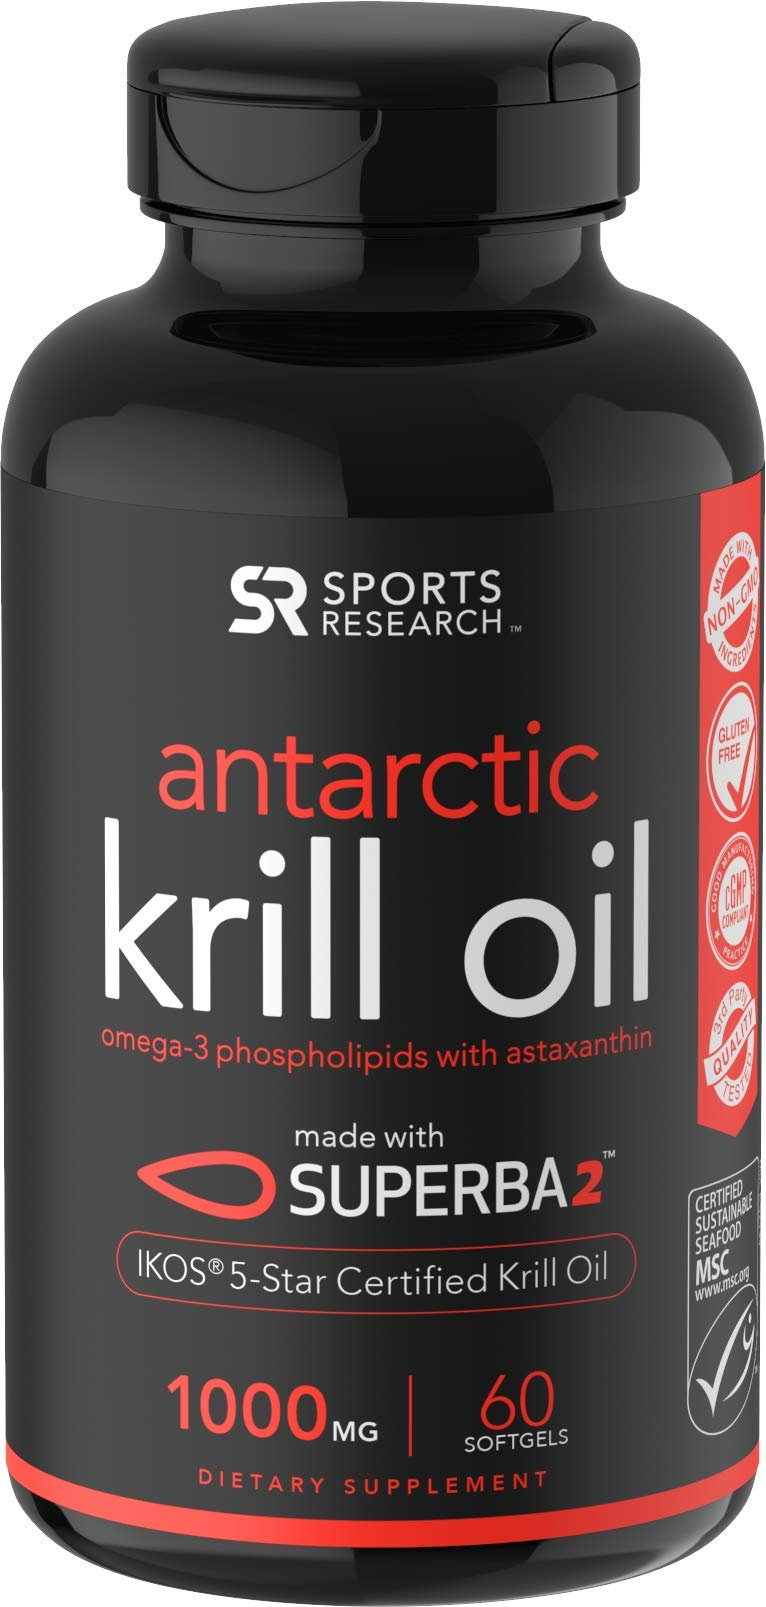 Antarctic Krill Oil (Double Strength) with Omega-3s EPA, DHA and Astaxanthin (60 Softgels - 1000mg) by Sports Research